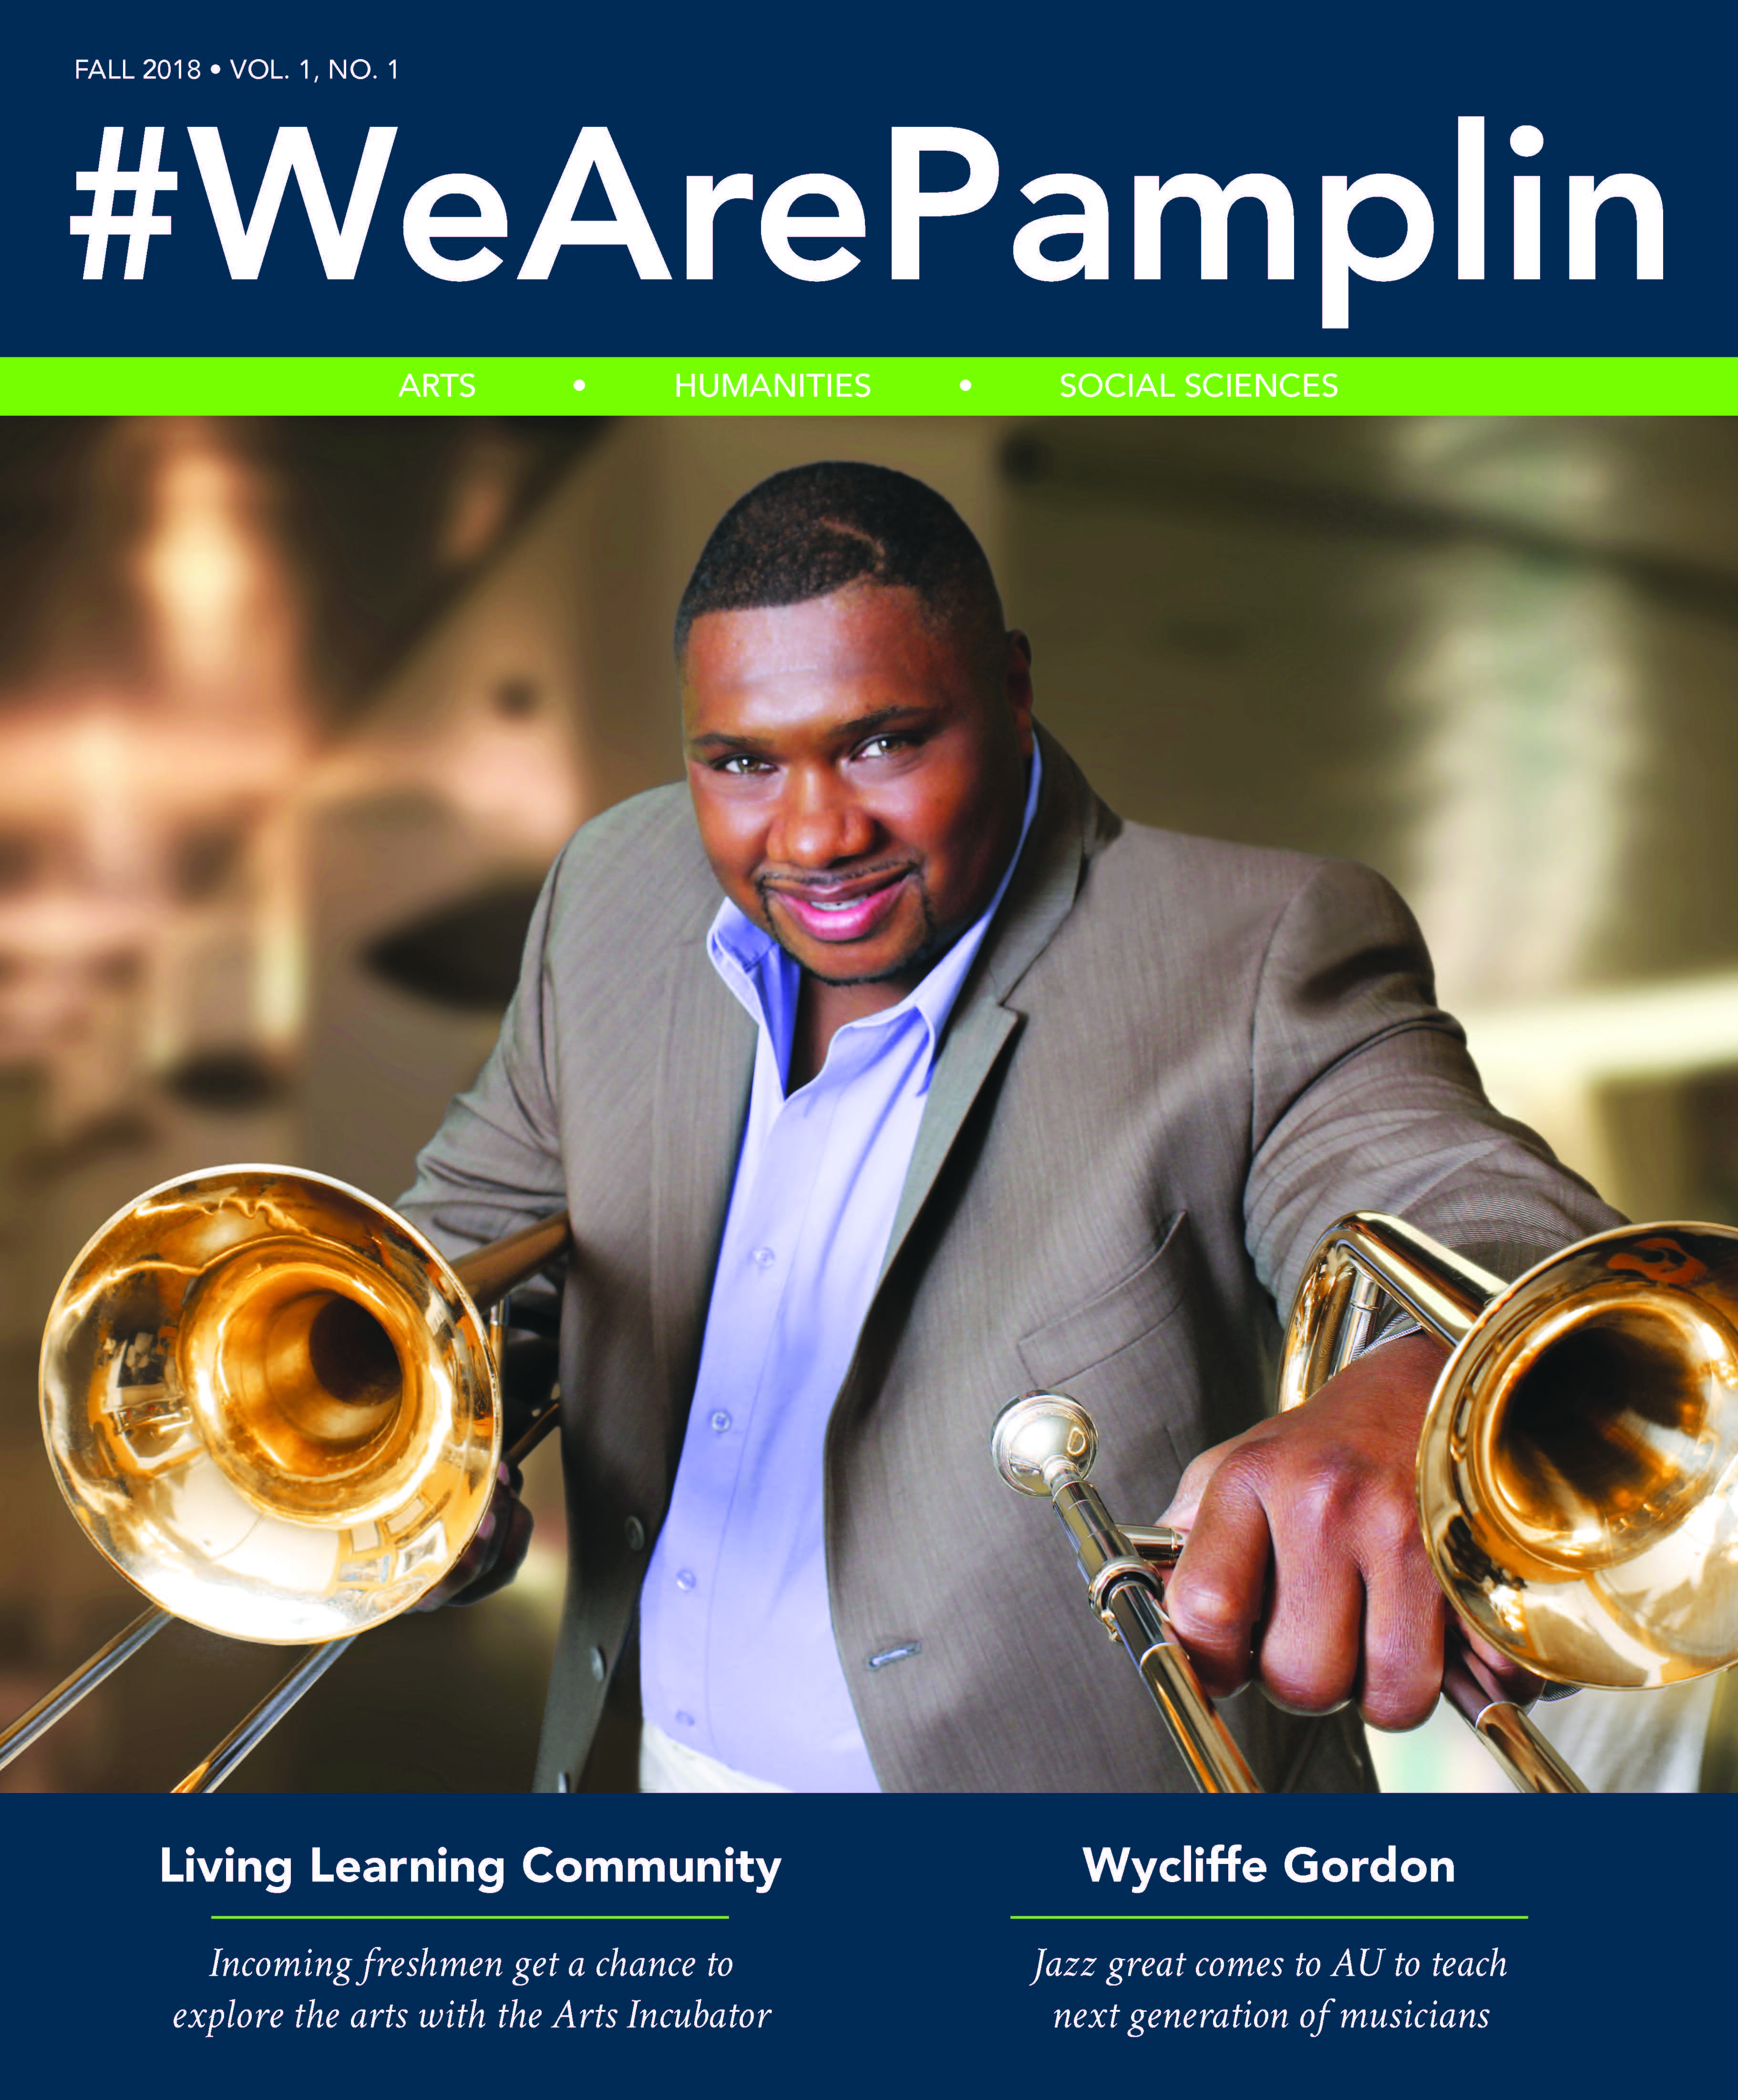 #WeArePamplin